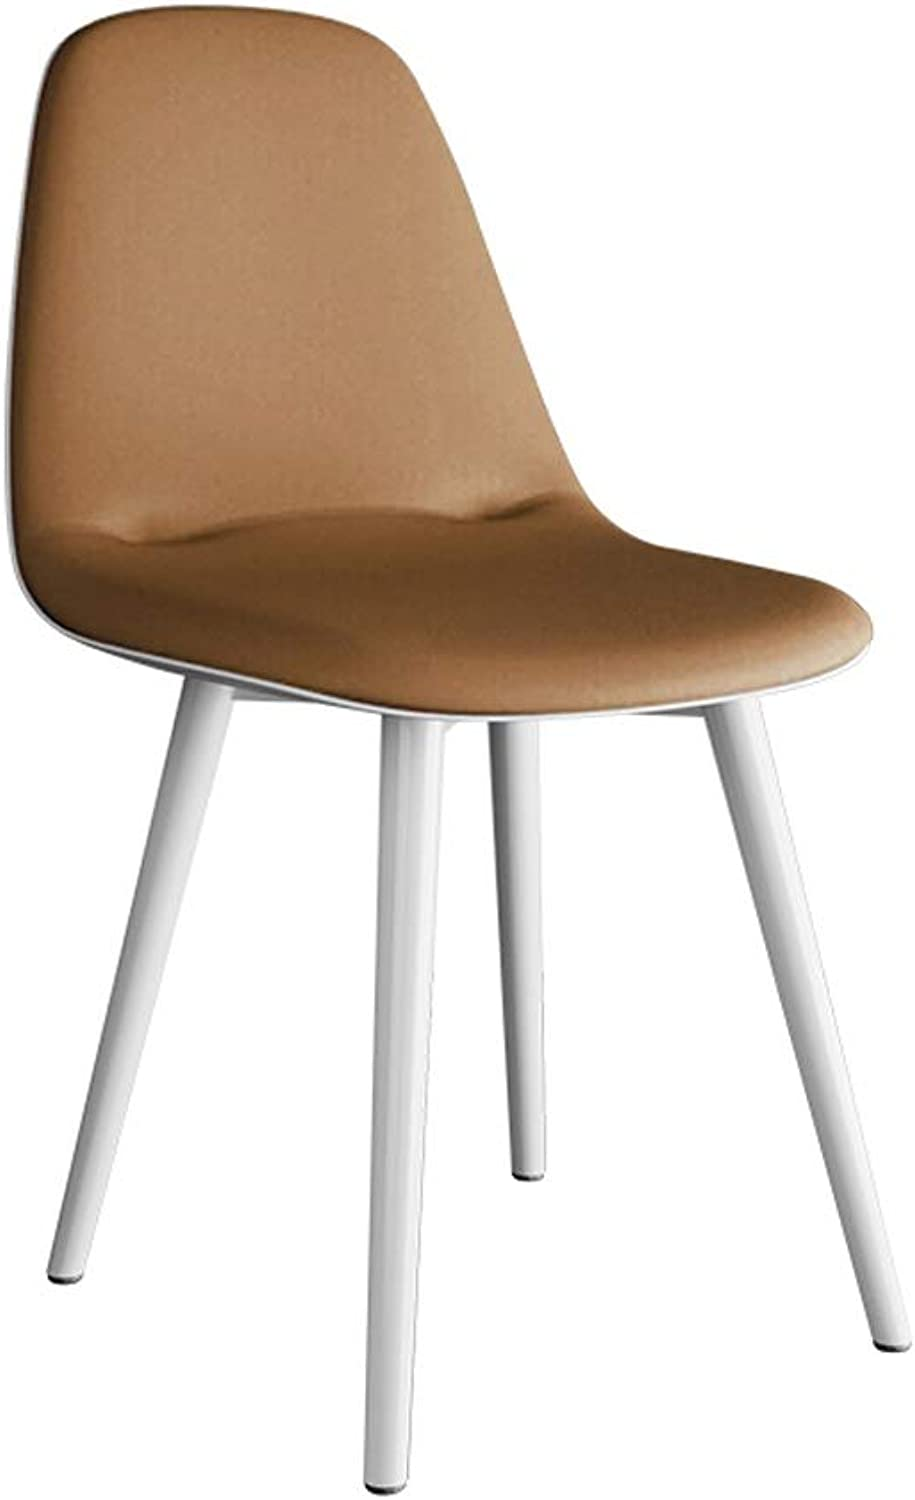 Dining Chair Leisure Backrest Chair Dressing Table Chair Cafe Bedroom Living Room Restaurant Dining Table Chair Computer Chair Barstool Stool (color   Khaki)